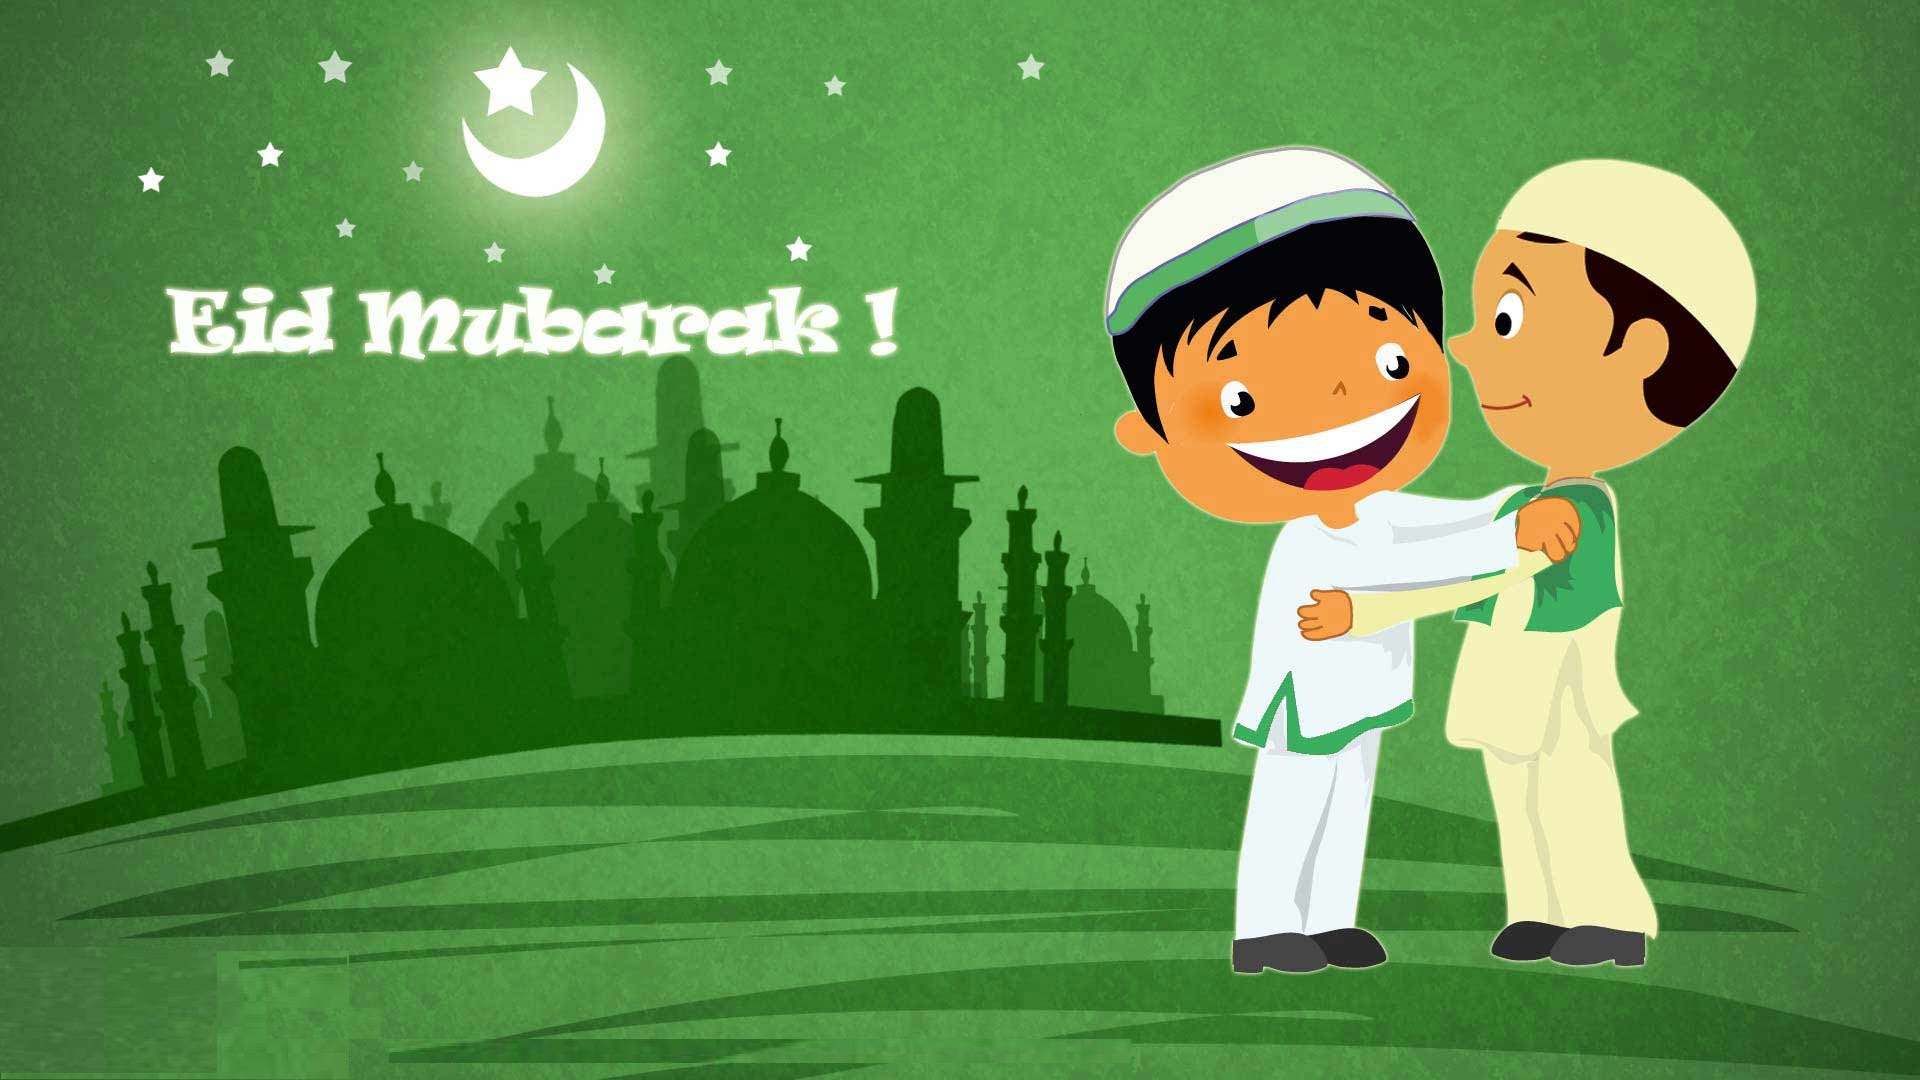 Best eid mubarak hd images greeting cards wallpaper and photos happy eid mubarak sms hindi shayari m4hsunfo